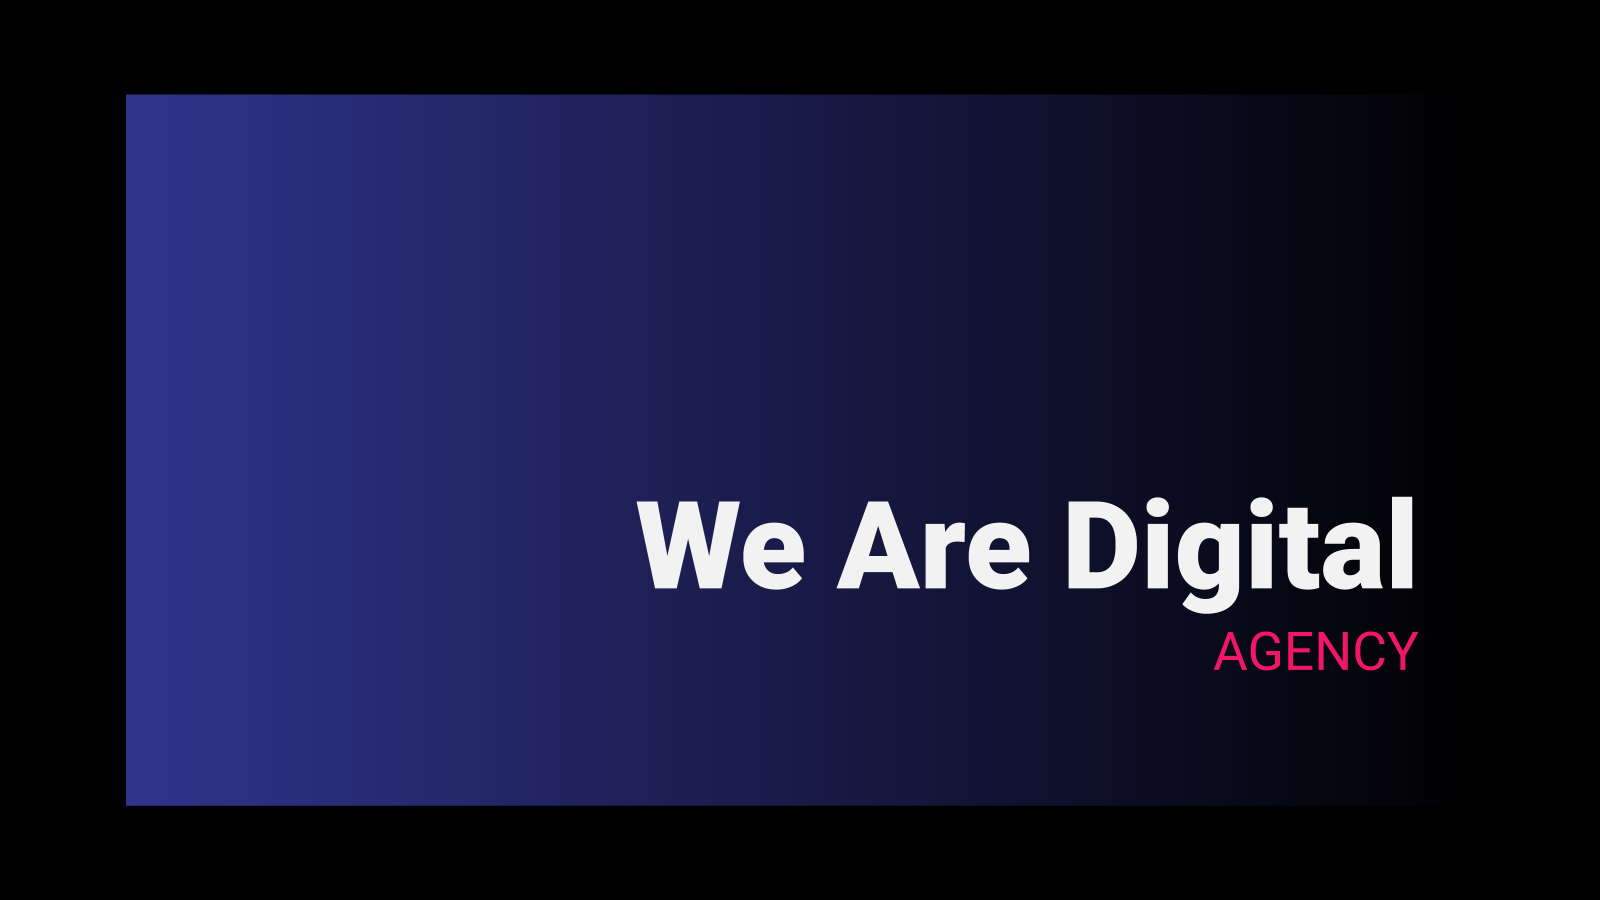 We Are Digital presentation template